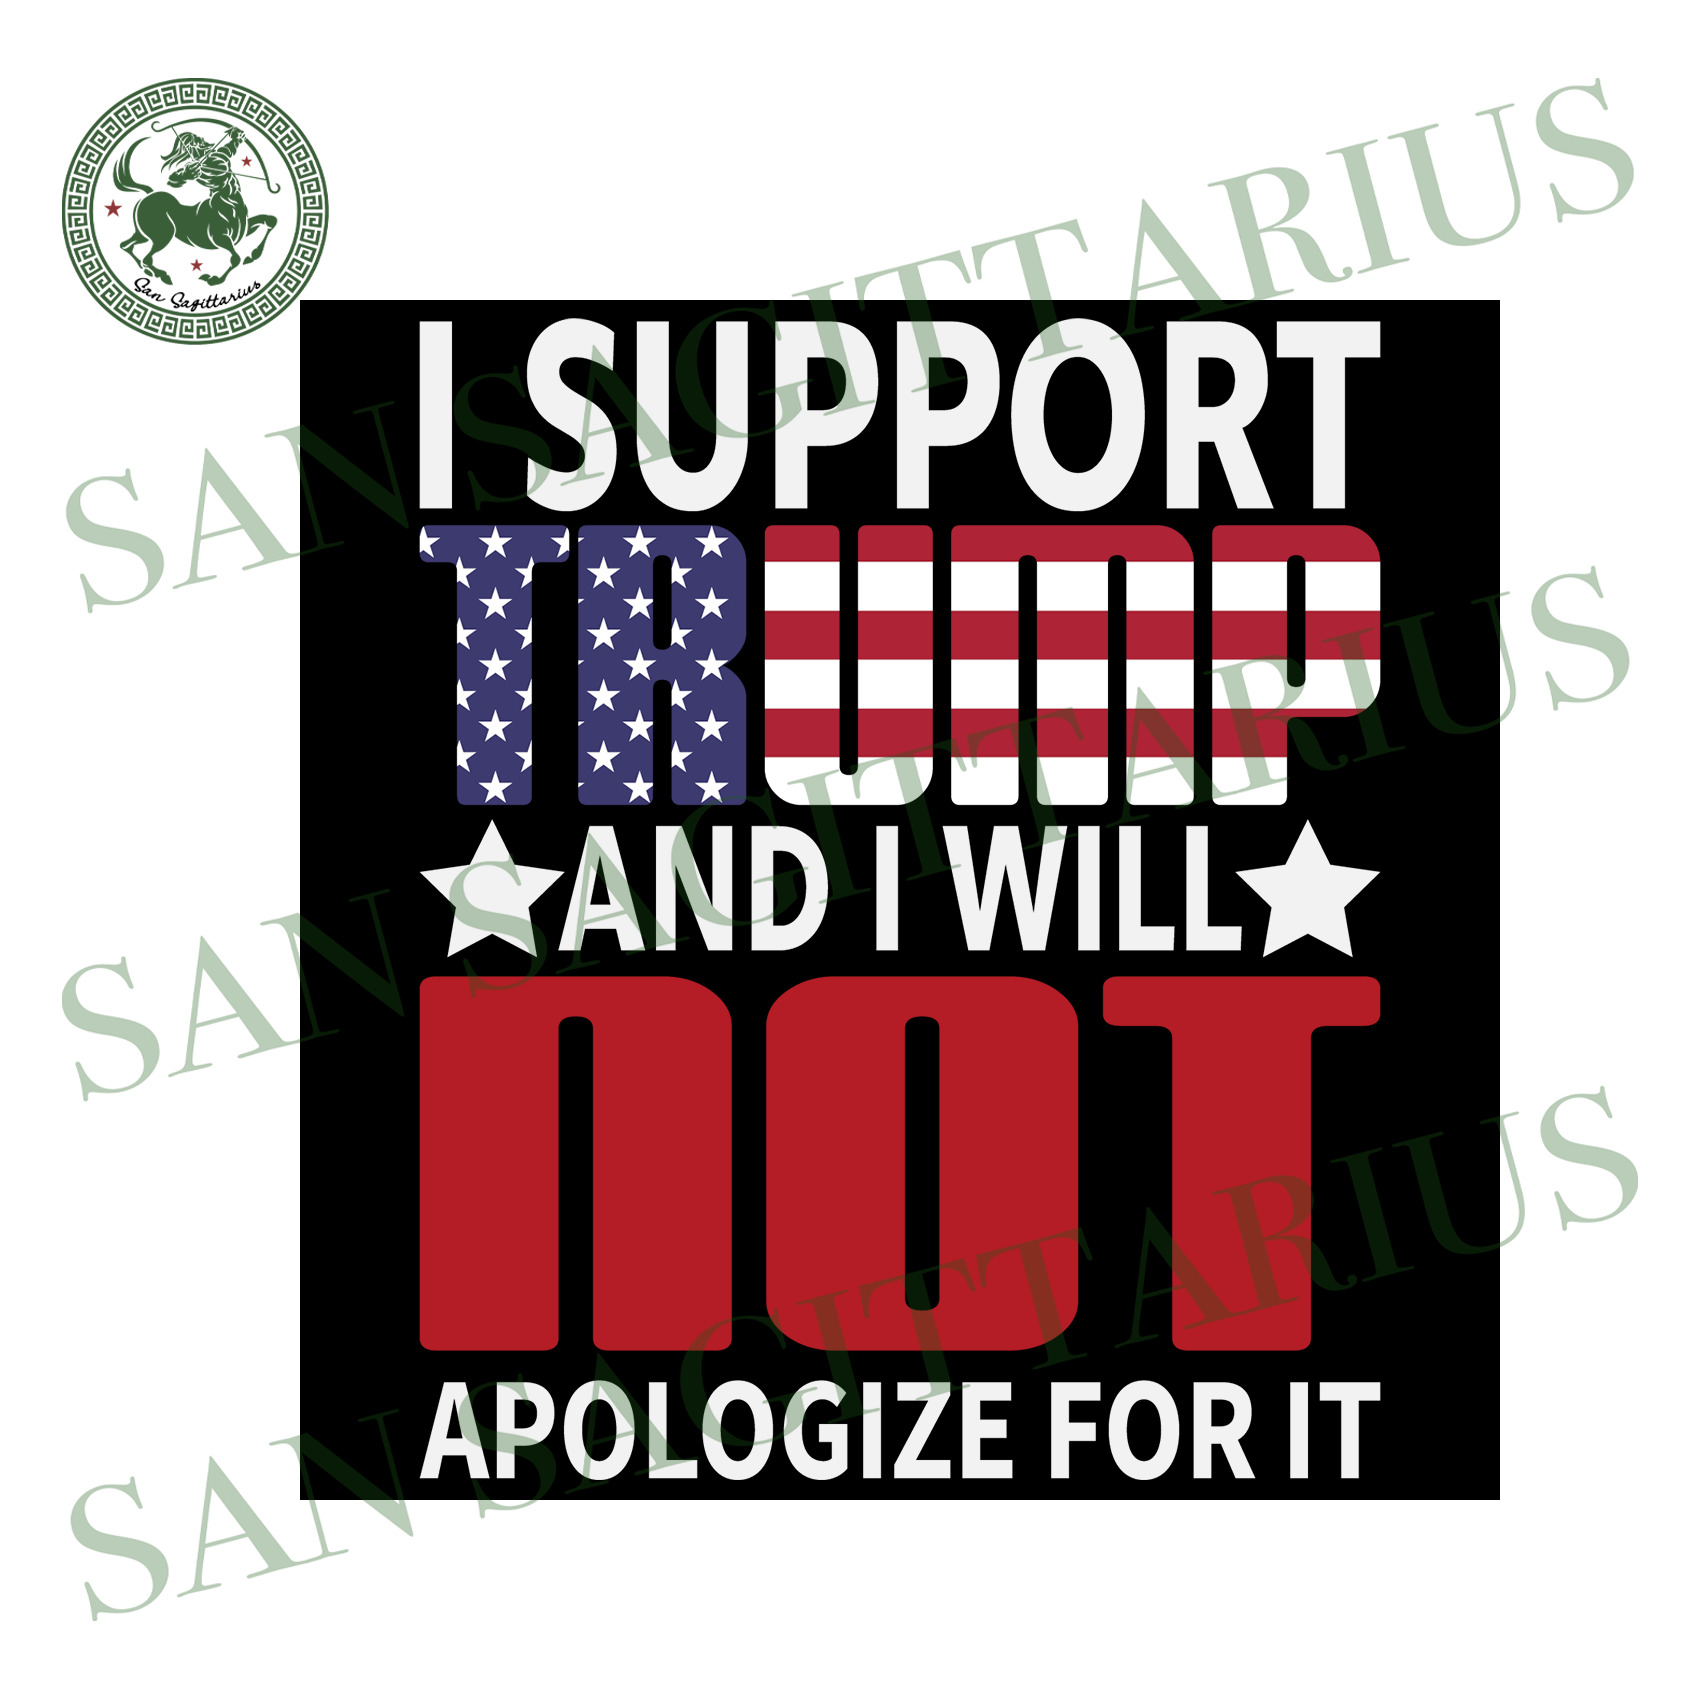 I support Trump svg, I will not apologize for it svg,svg,Donald Trump svg,support Trump svg,trump for president svg,pro republican gift,svg cricut, silhouette svg files, cricut svg, silhouett